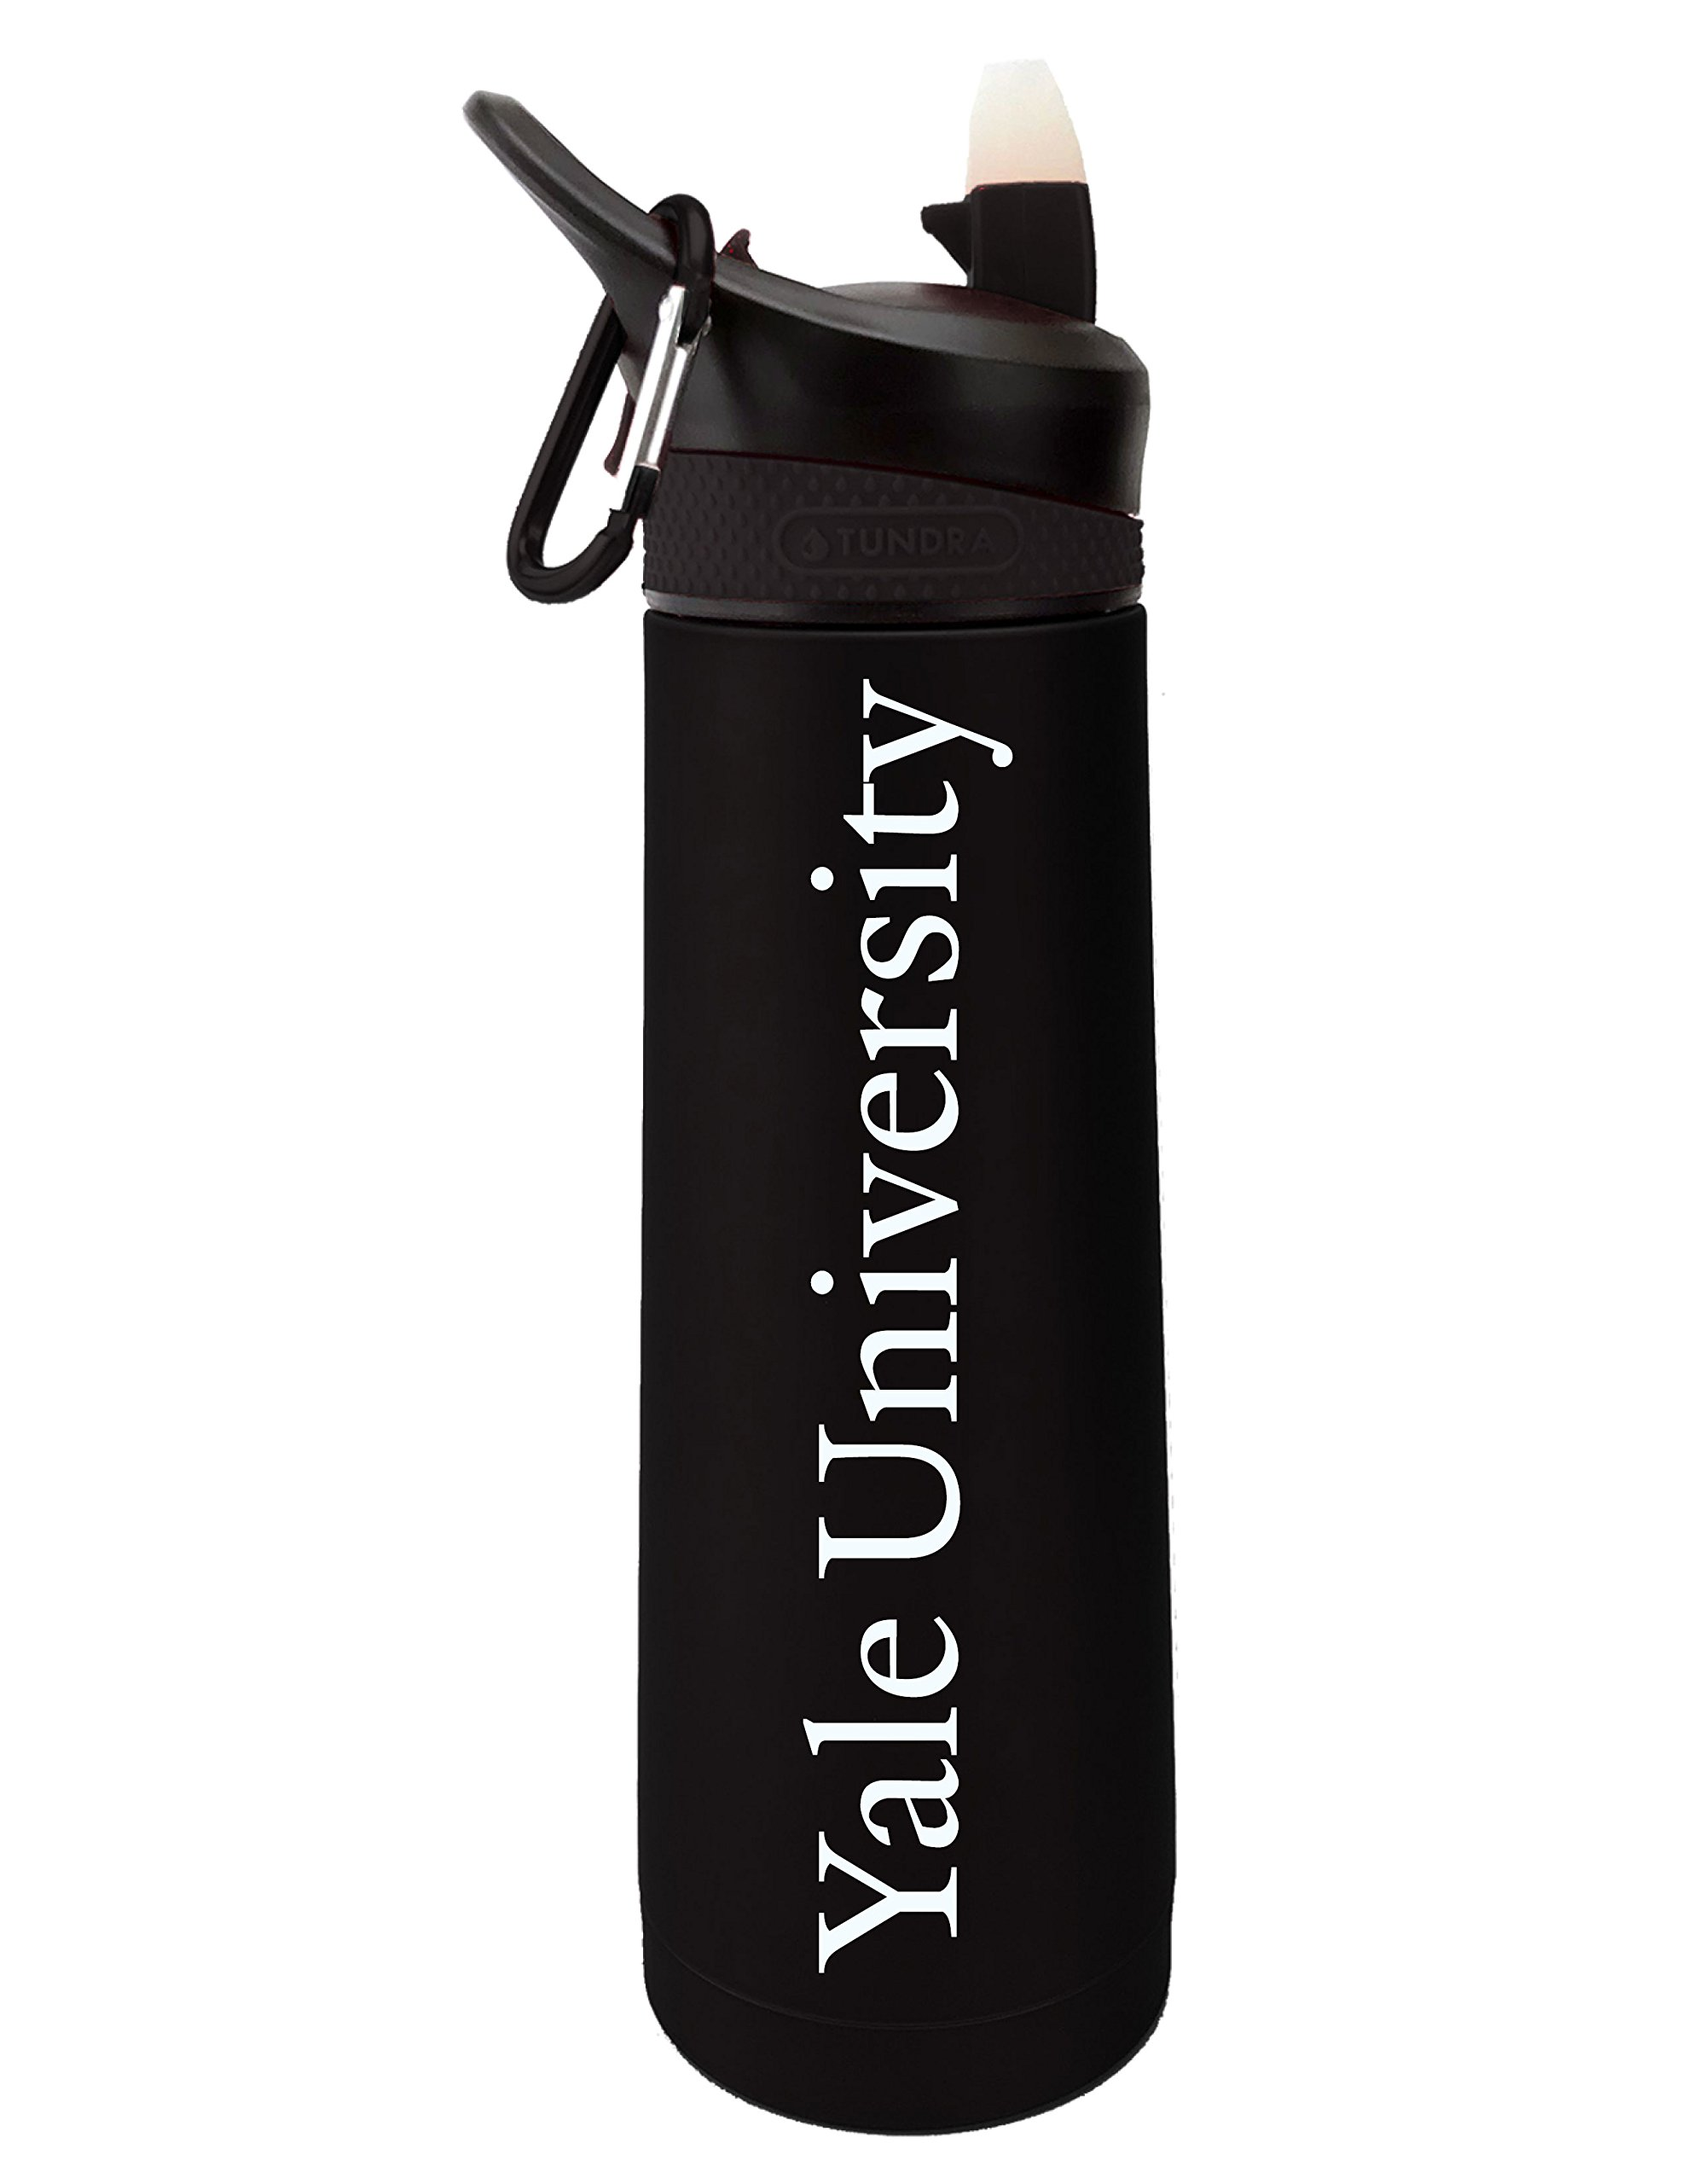 Fanatic Group Yale University Dual Walled Stainless Steel Sports Bottle, Design 2 - Black